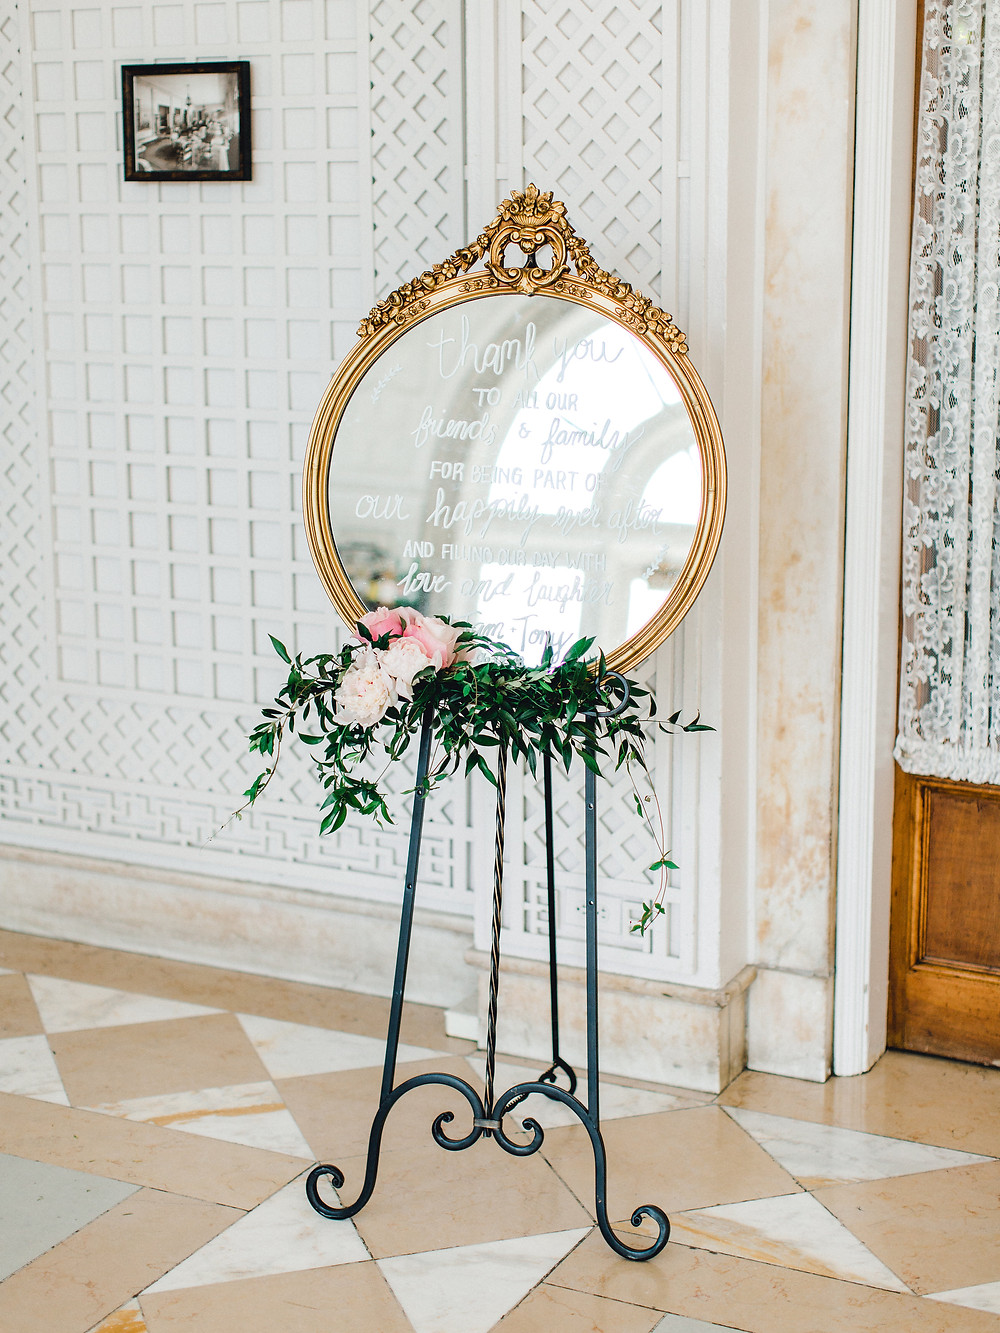 Using a vintage mirror on easel to send your guests a thank you